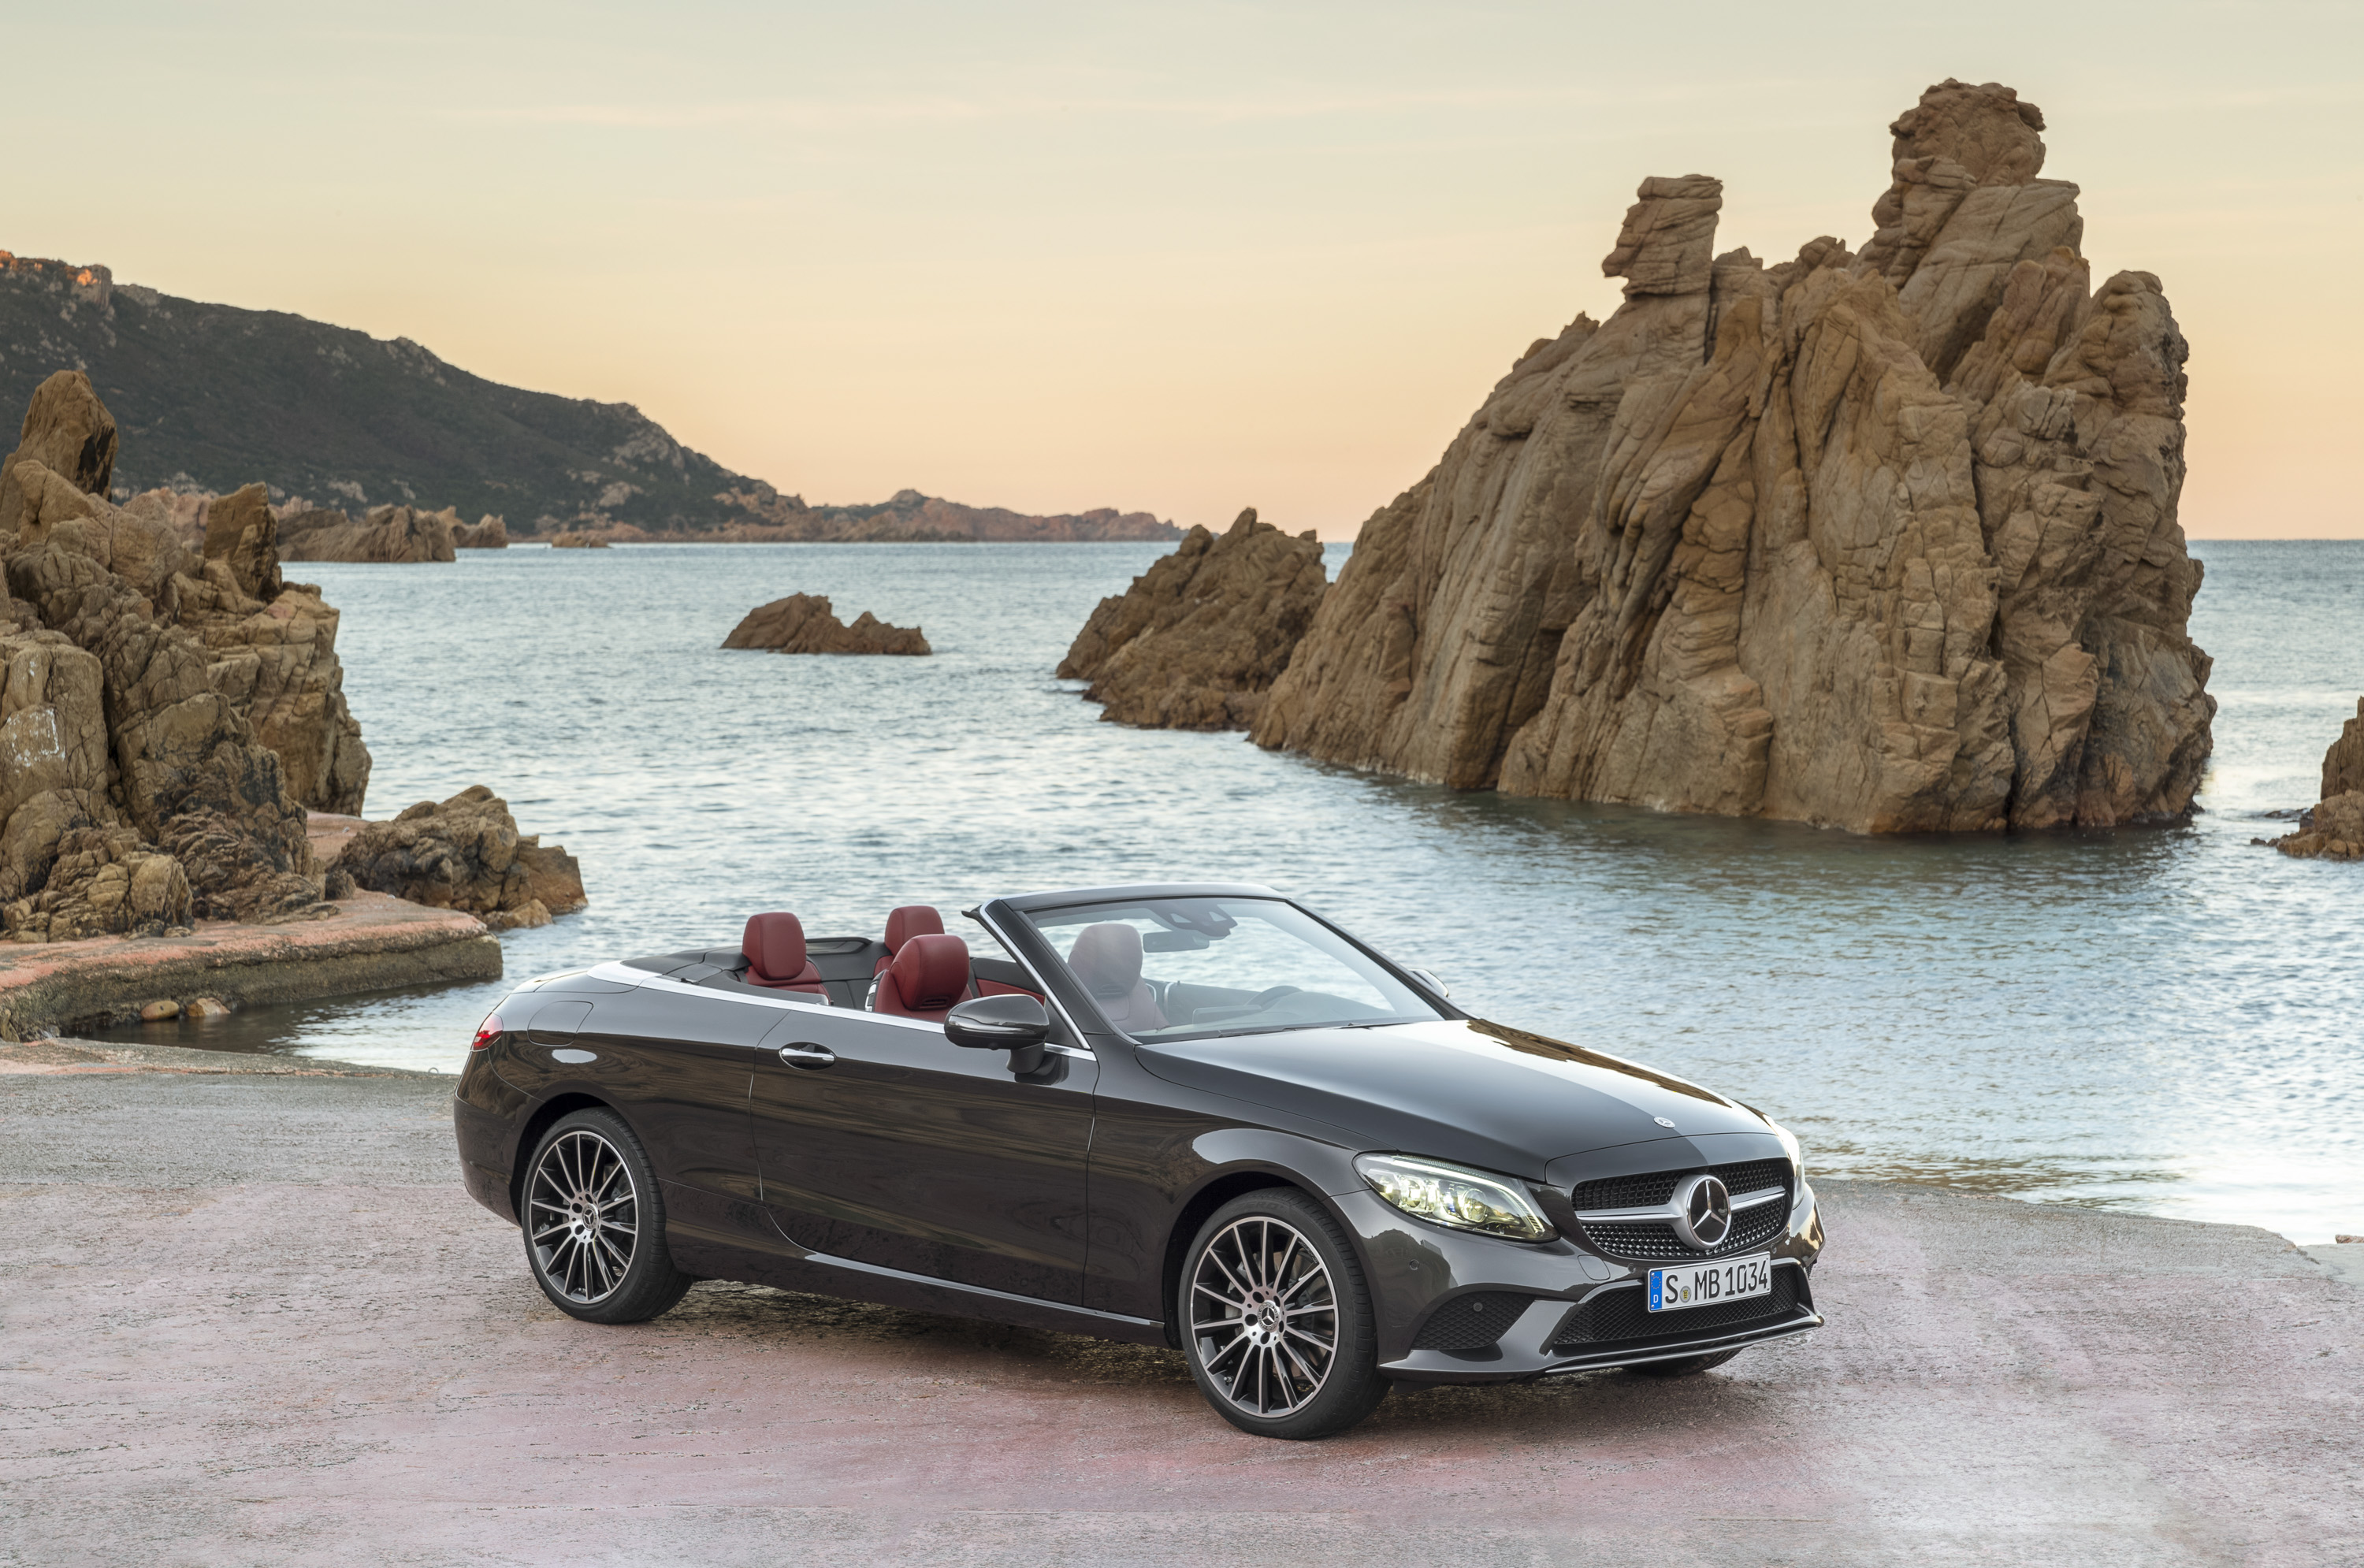 2019 Mercedes-Benz C-Class Cabriolet | Top Speed